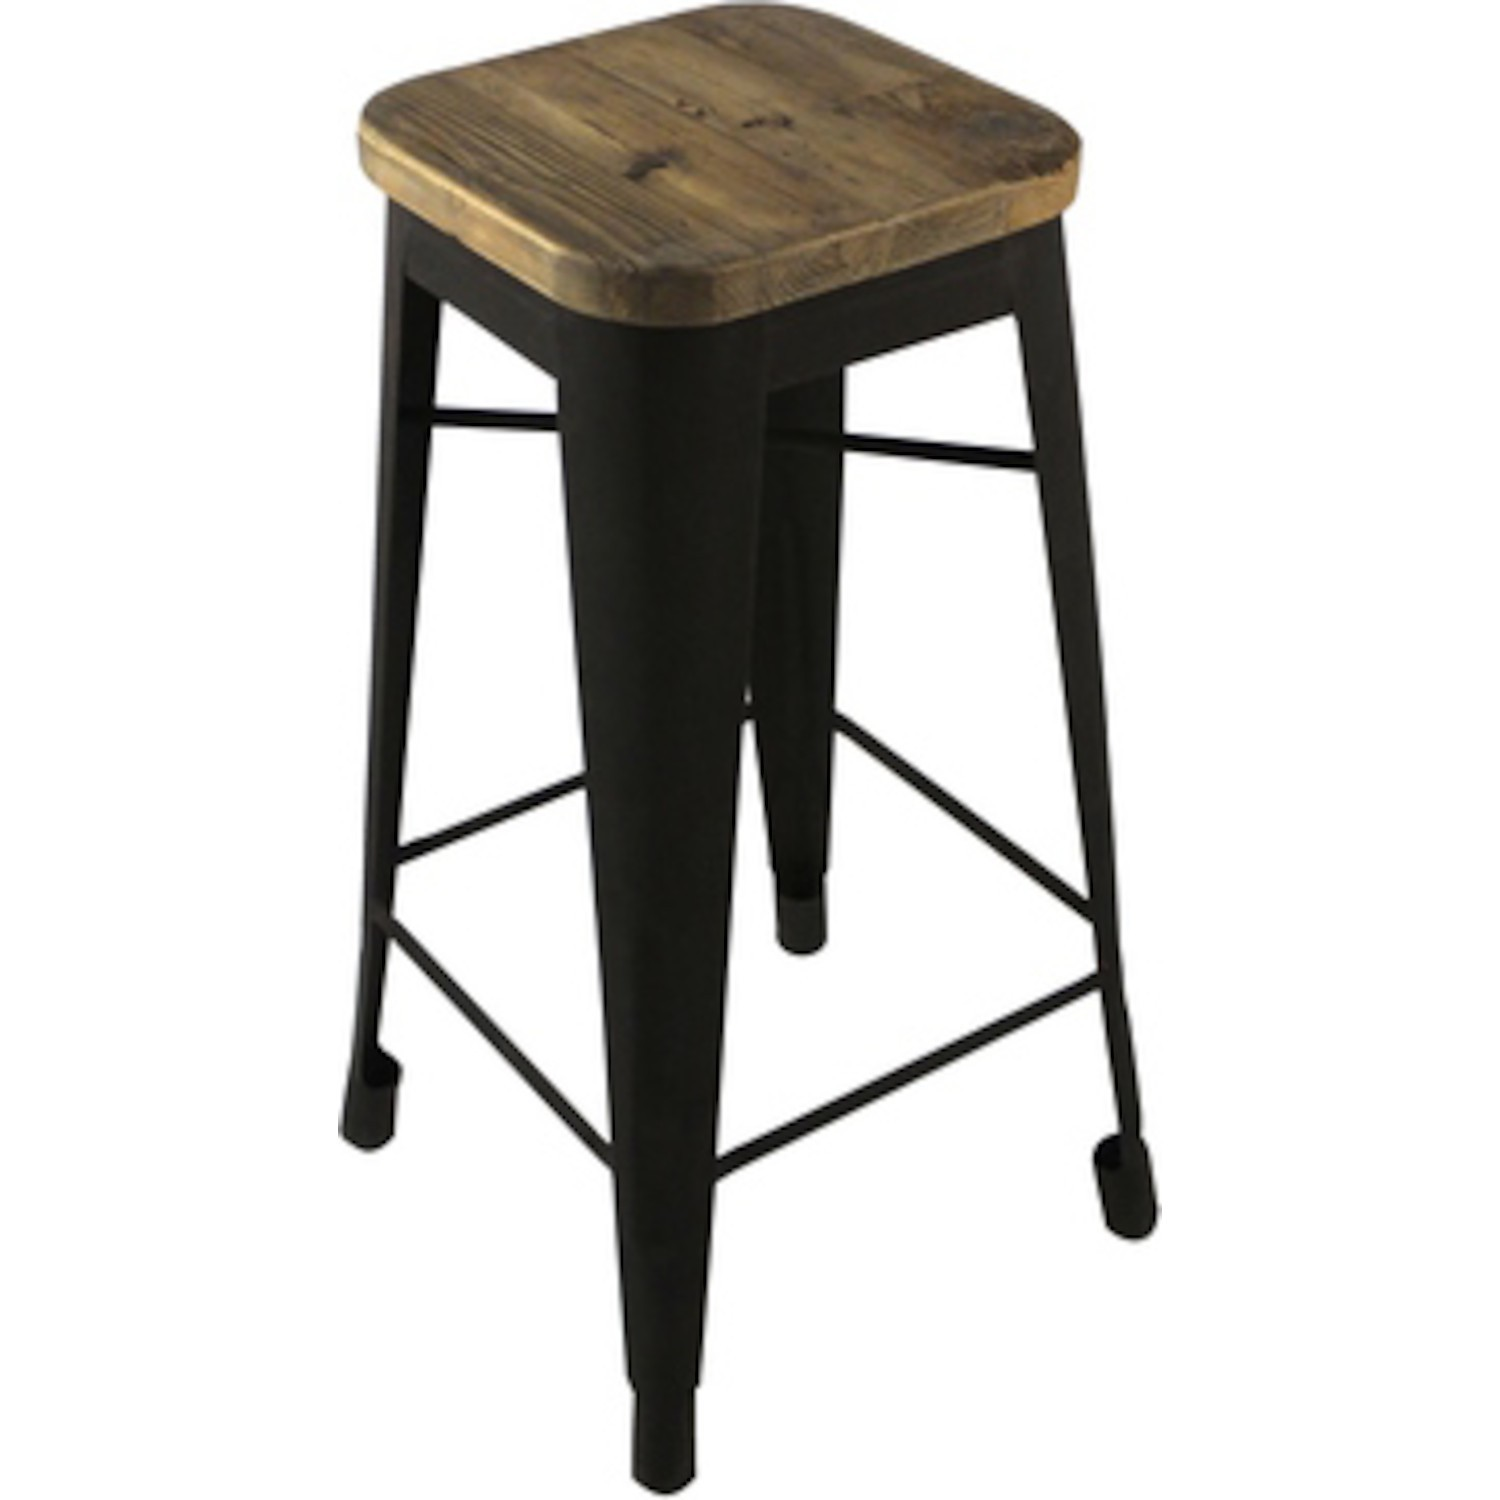 tabouret de bar haut maison design. Black Bedroom Furniture Sets. Home Design Ideas